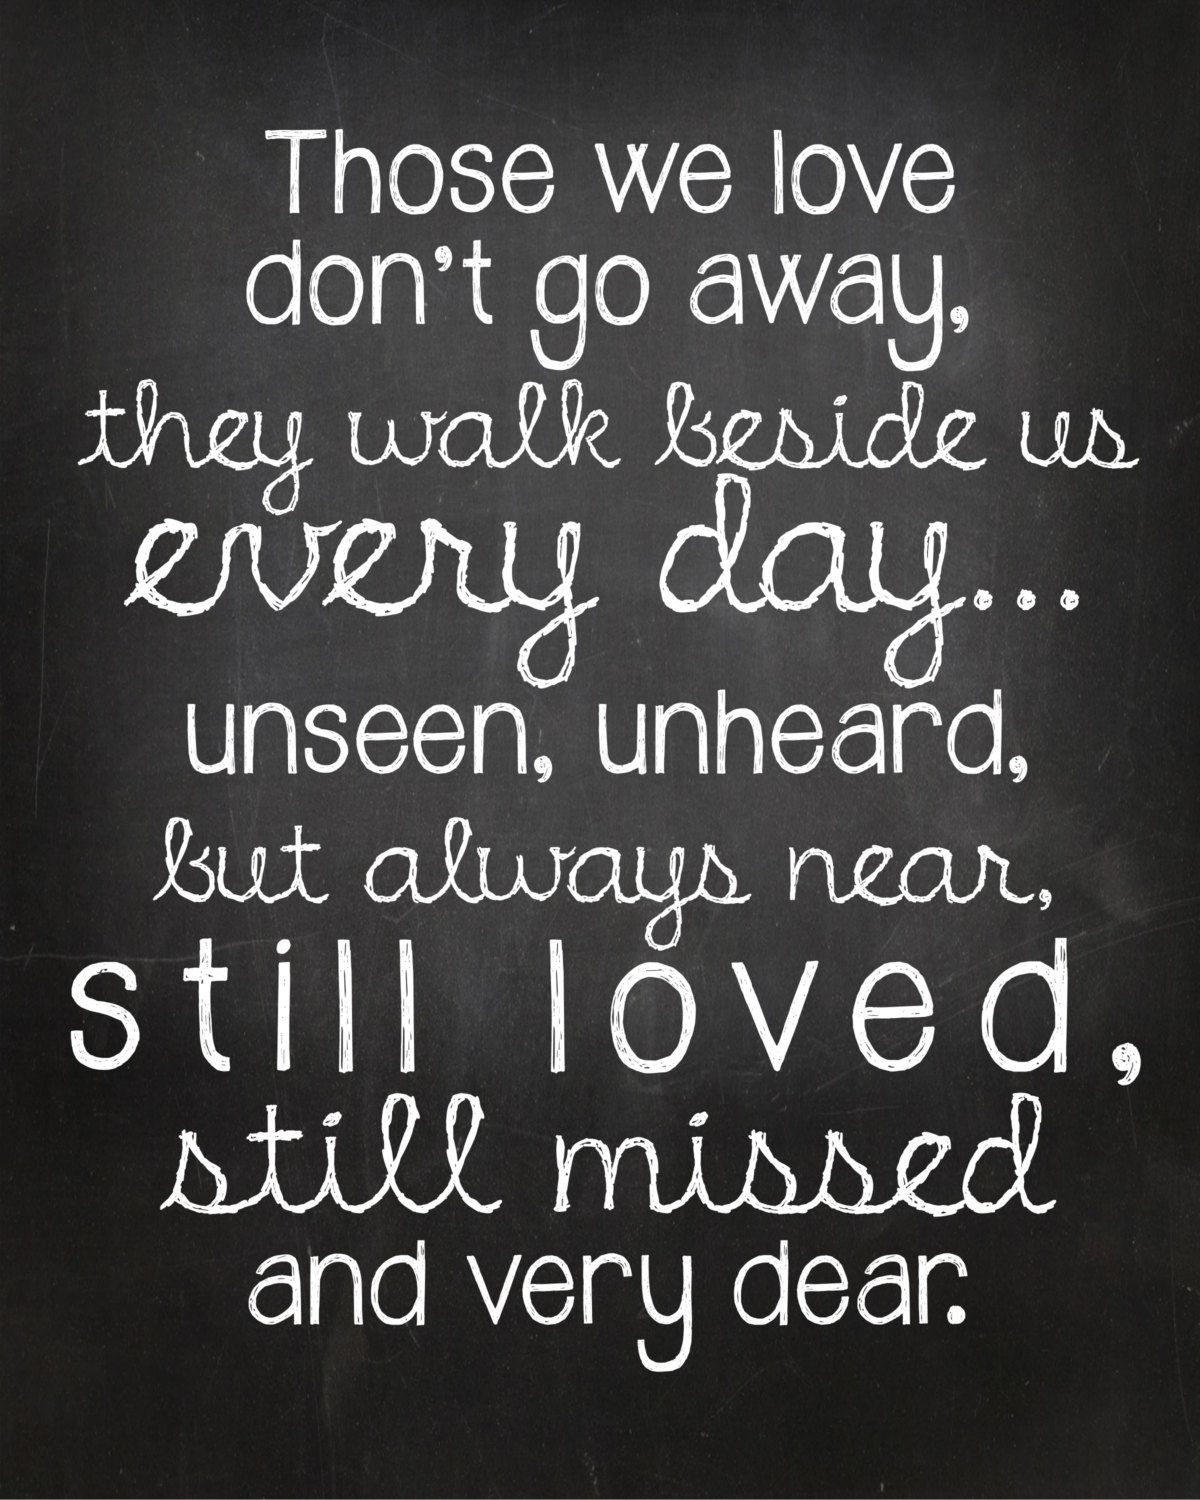 Love you very much Those we love don t go away They walk beside us every day unseen unheard but always nearill loved still missed and very dear